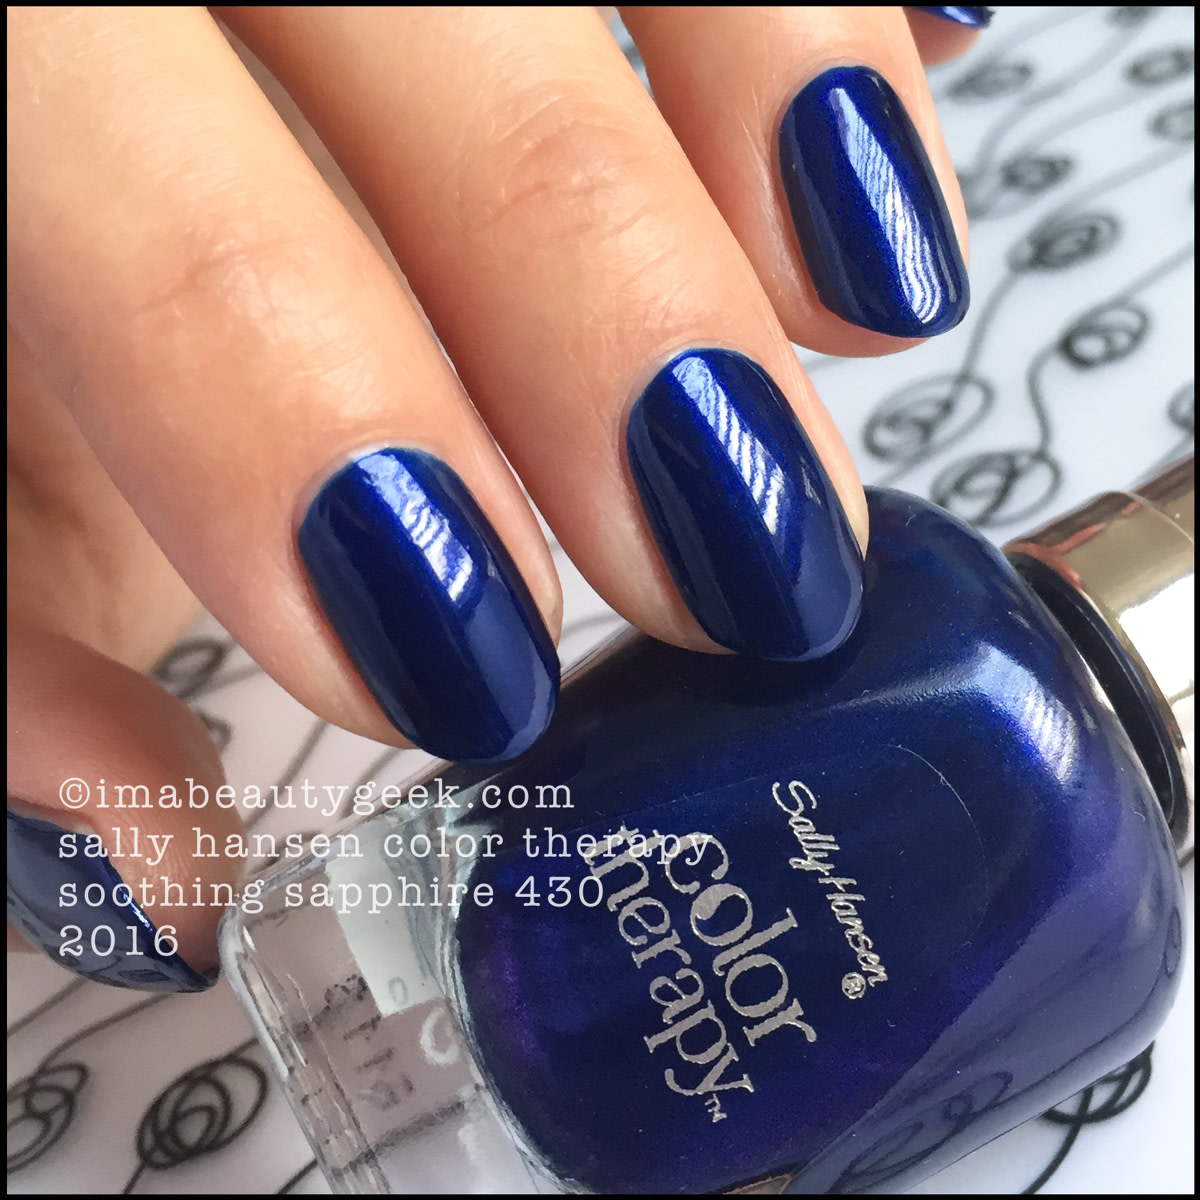 Sally Hansen Color Therapy Soothing Sapphire 430_Sally Hansen Color Therapy Review Swatches